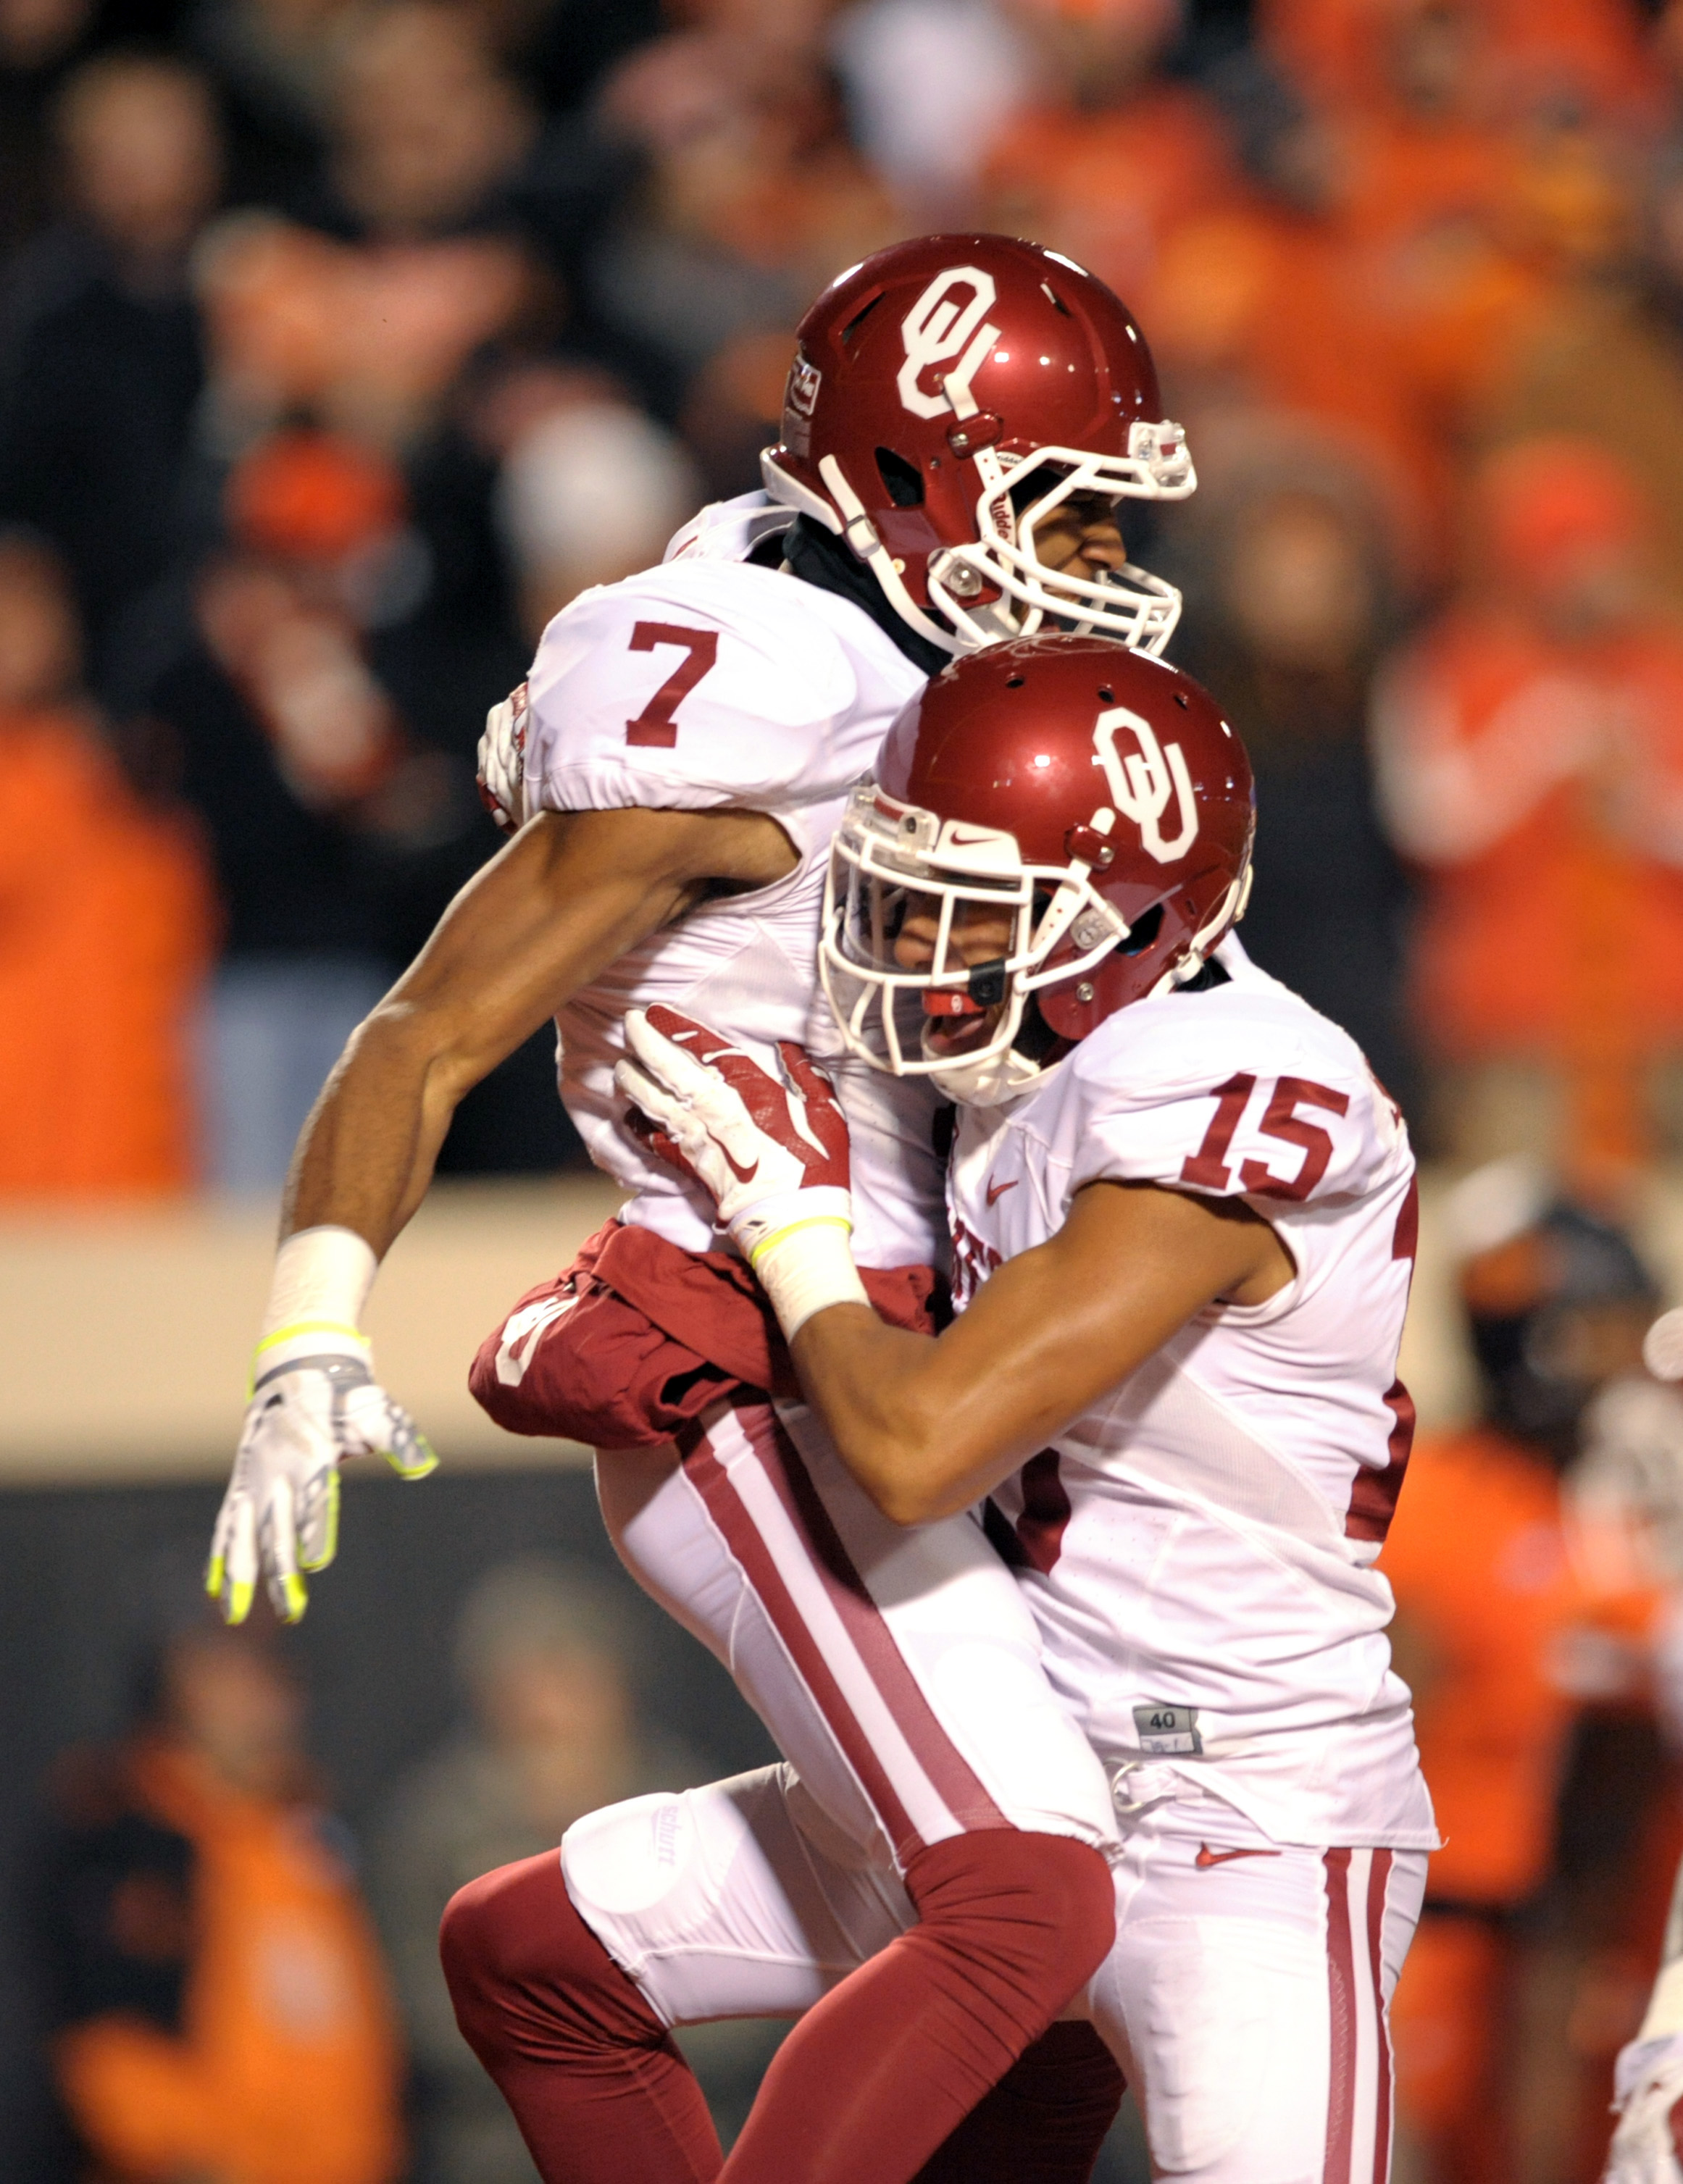 Oklahoma cornerback Jordan Thomas (7) celebrates his touchdown off an interception with corner back Zach Sanchez during an NCAA college football game against Oklahoma St in Stillwater, Okla., Saturday, Nov. 28, 2015. (AP Photo/Brody Schmidt)